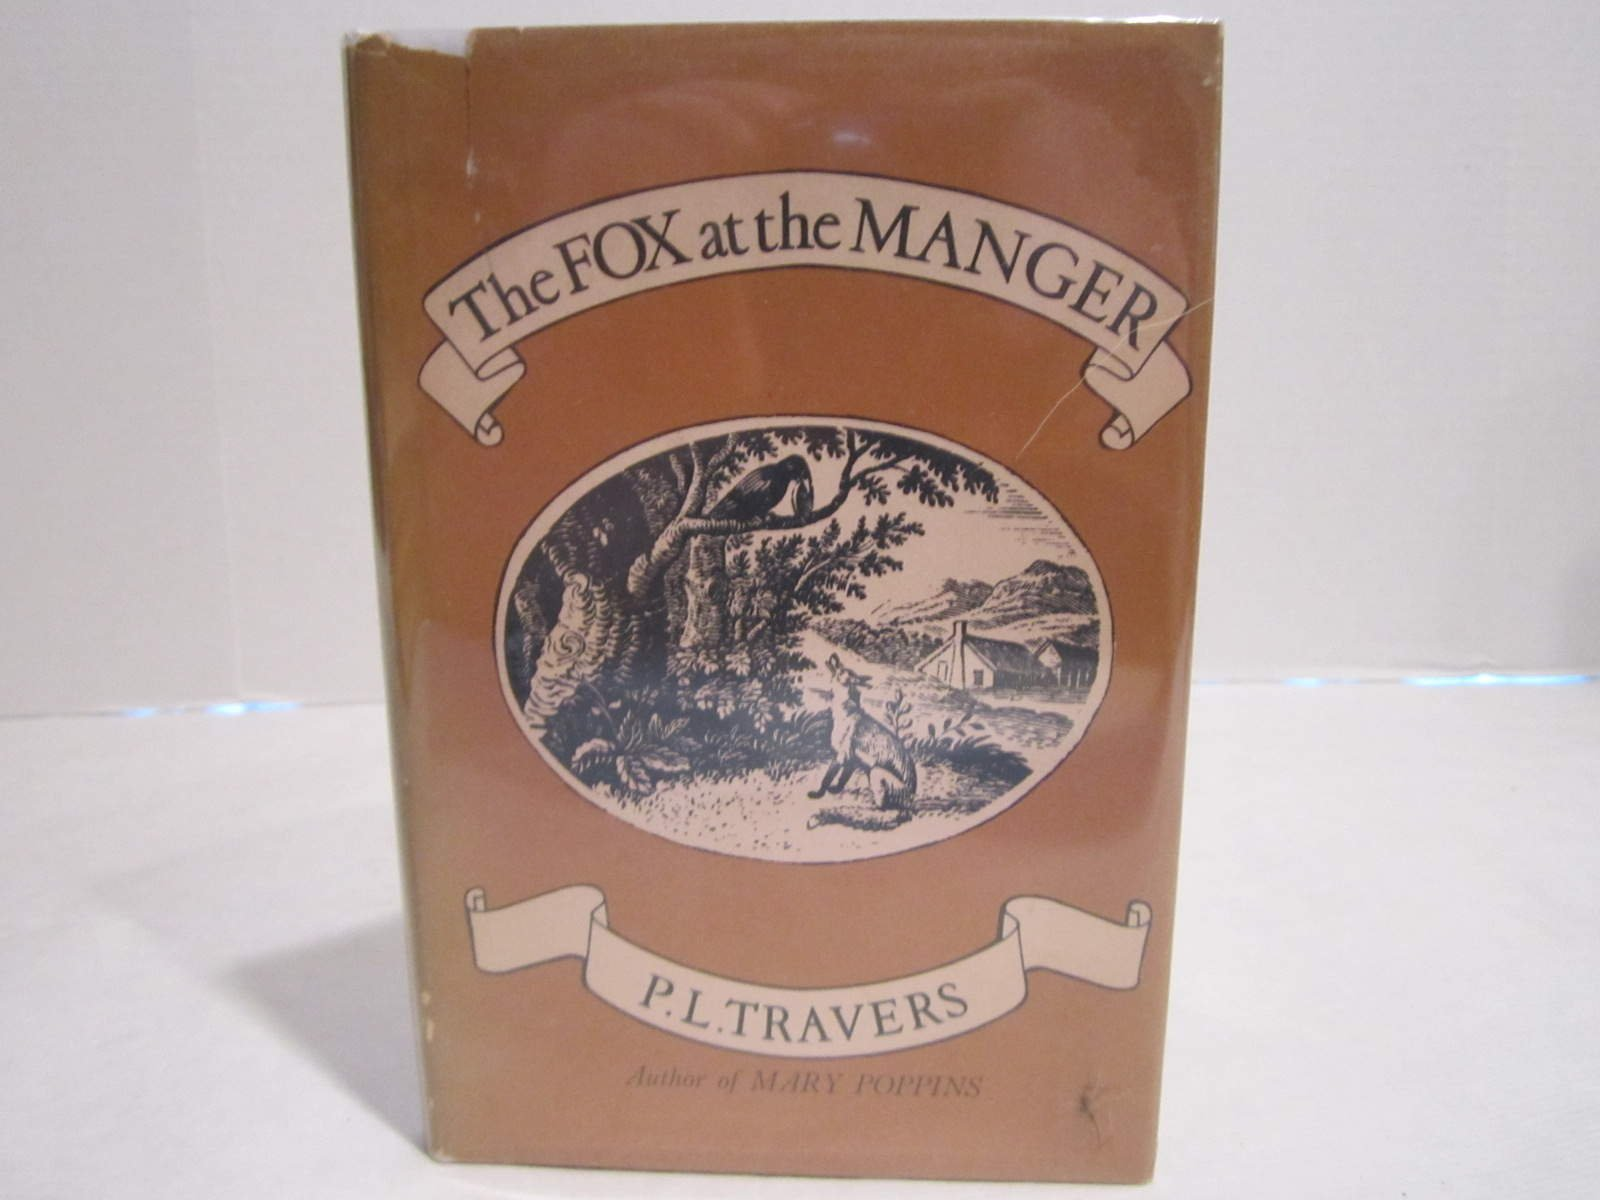 Fox at the Manger [1st US Printing], P L Travers